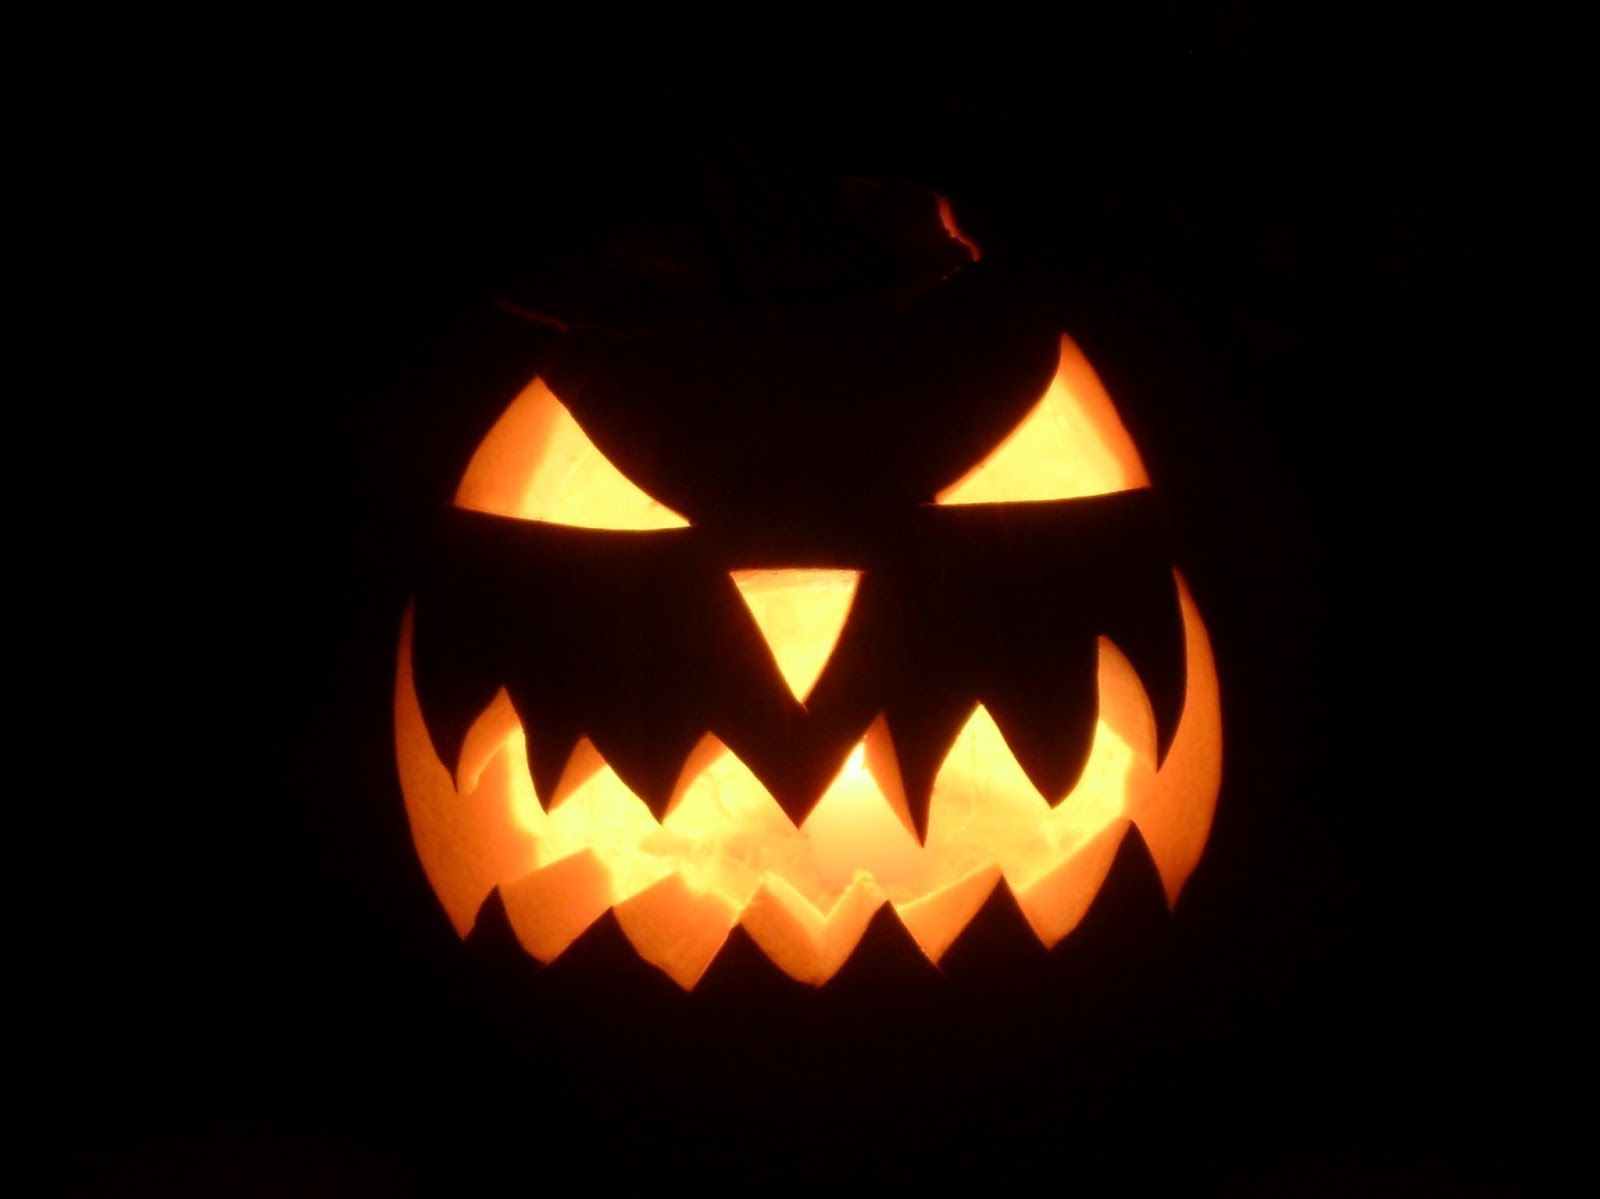 evil face pumpkin template - simple silly scary jack o lantern faces images pictures